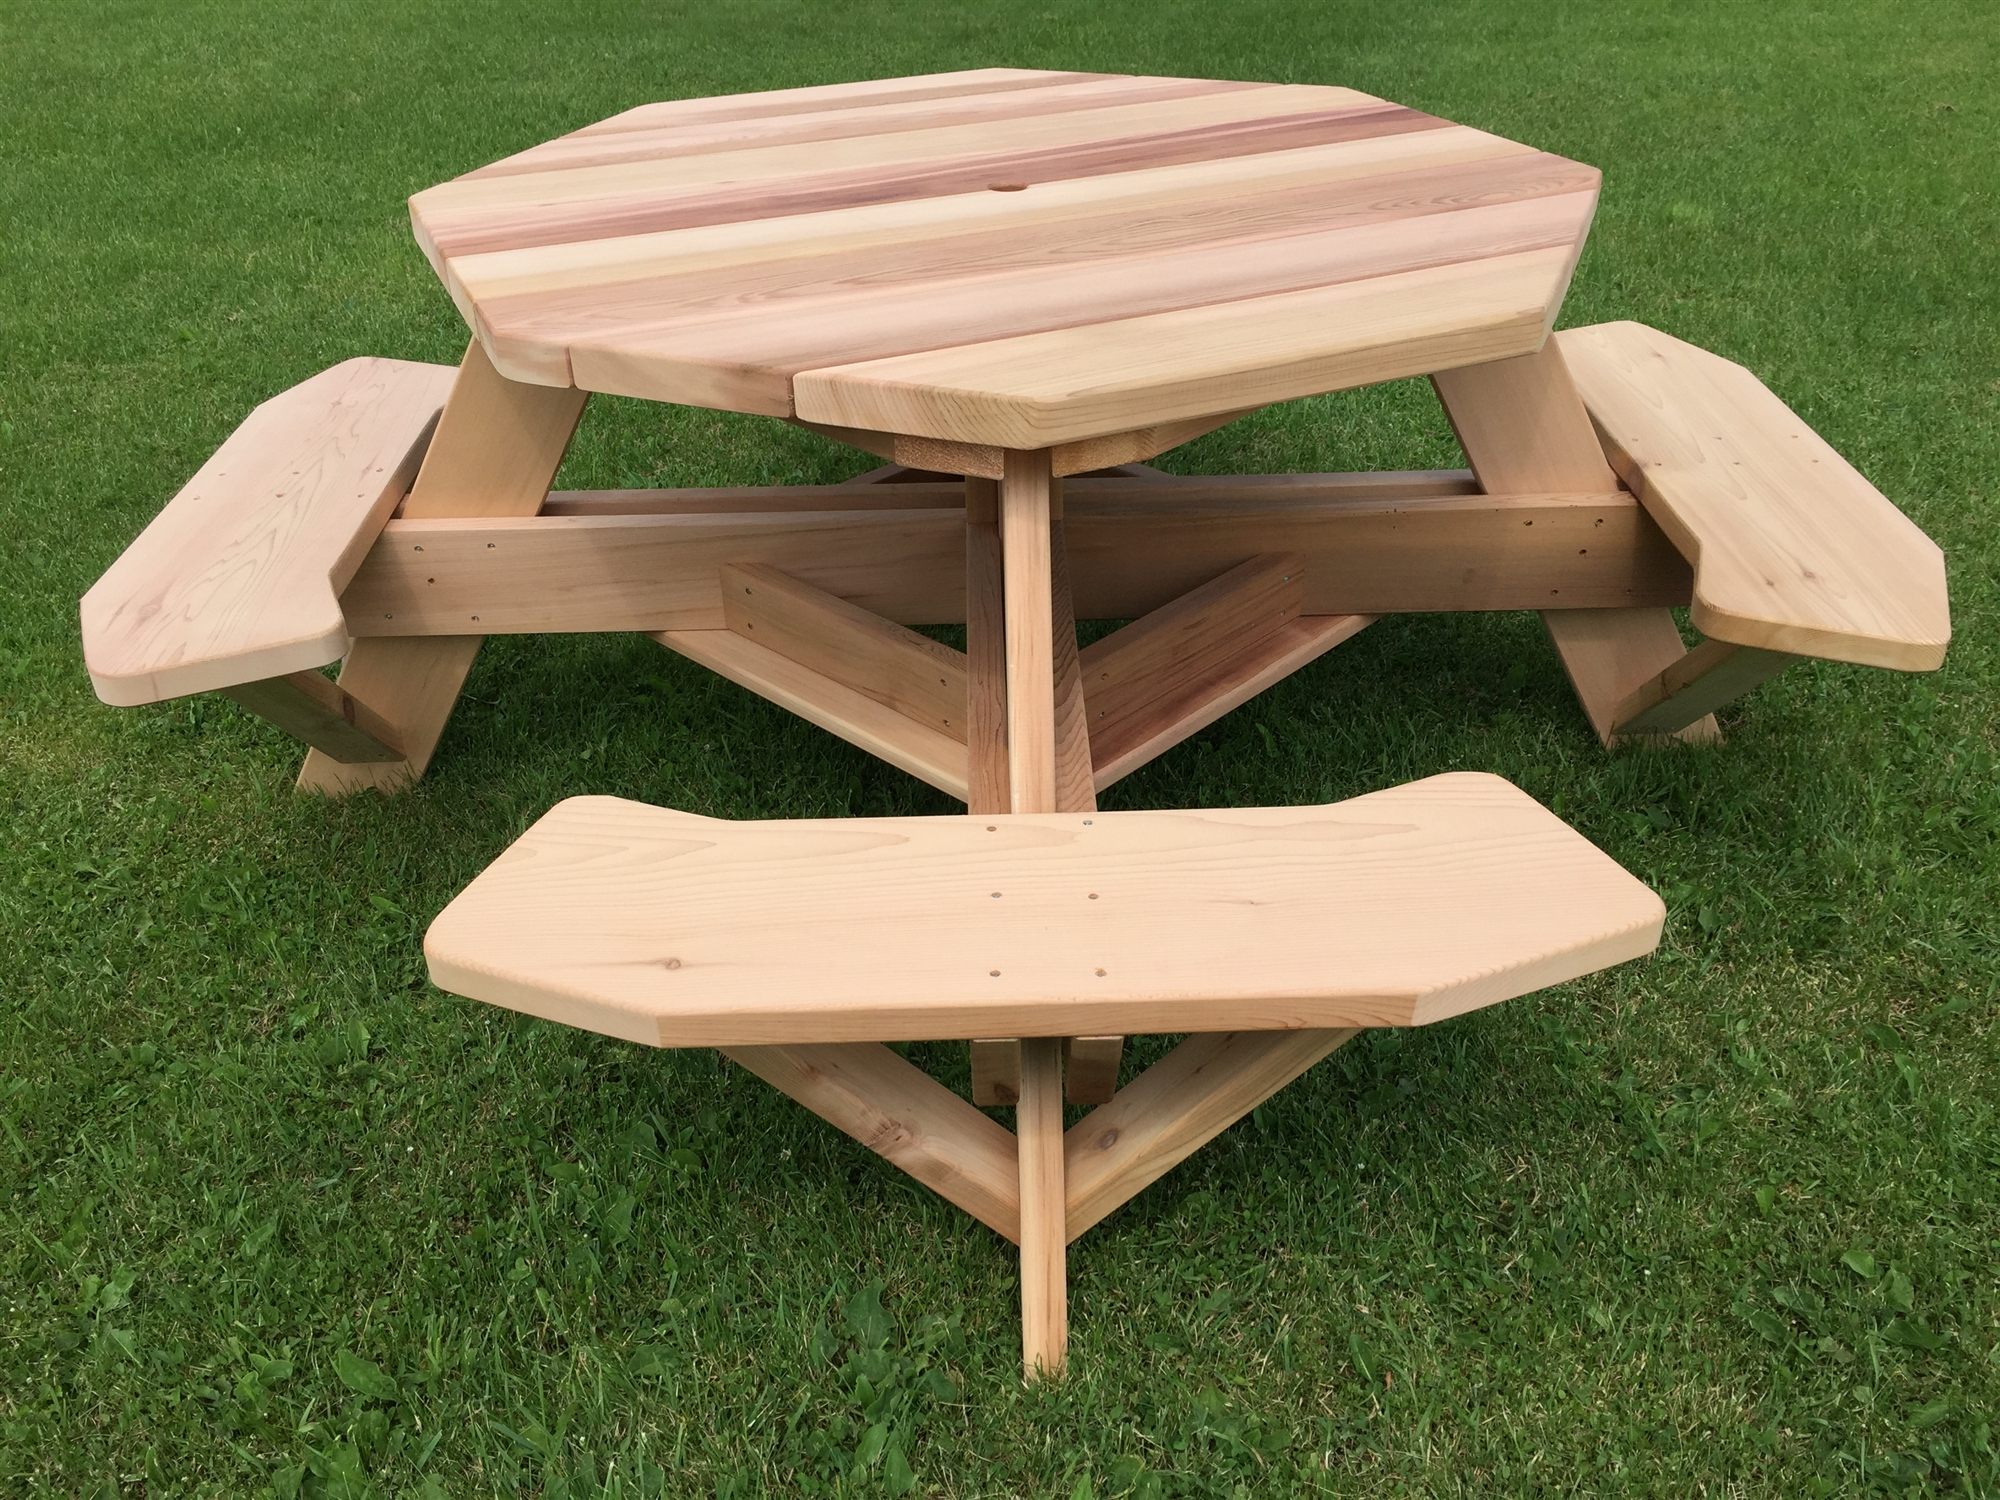 Western Red Cedar Octagon Picnic Tables For Backyards Patios - Composite octagon picnic table